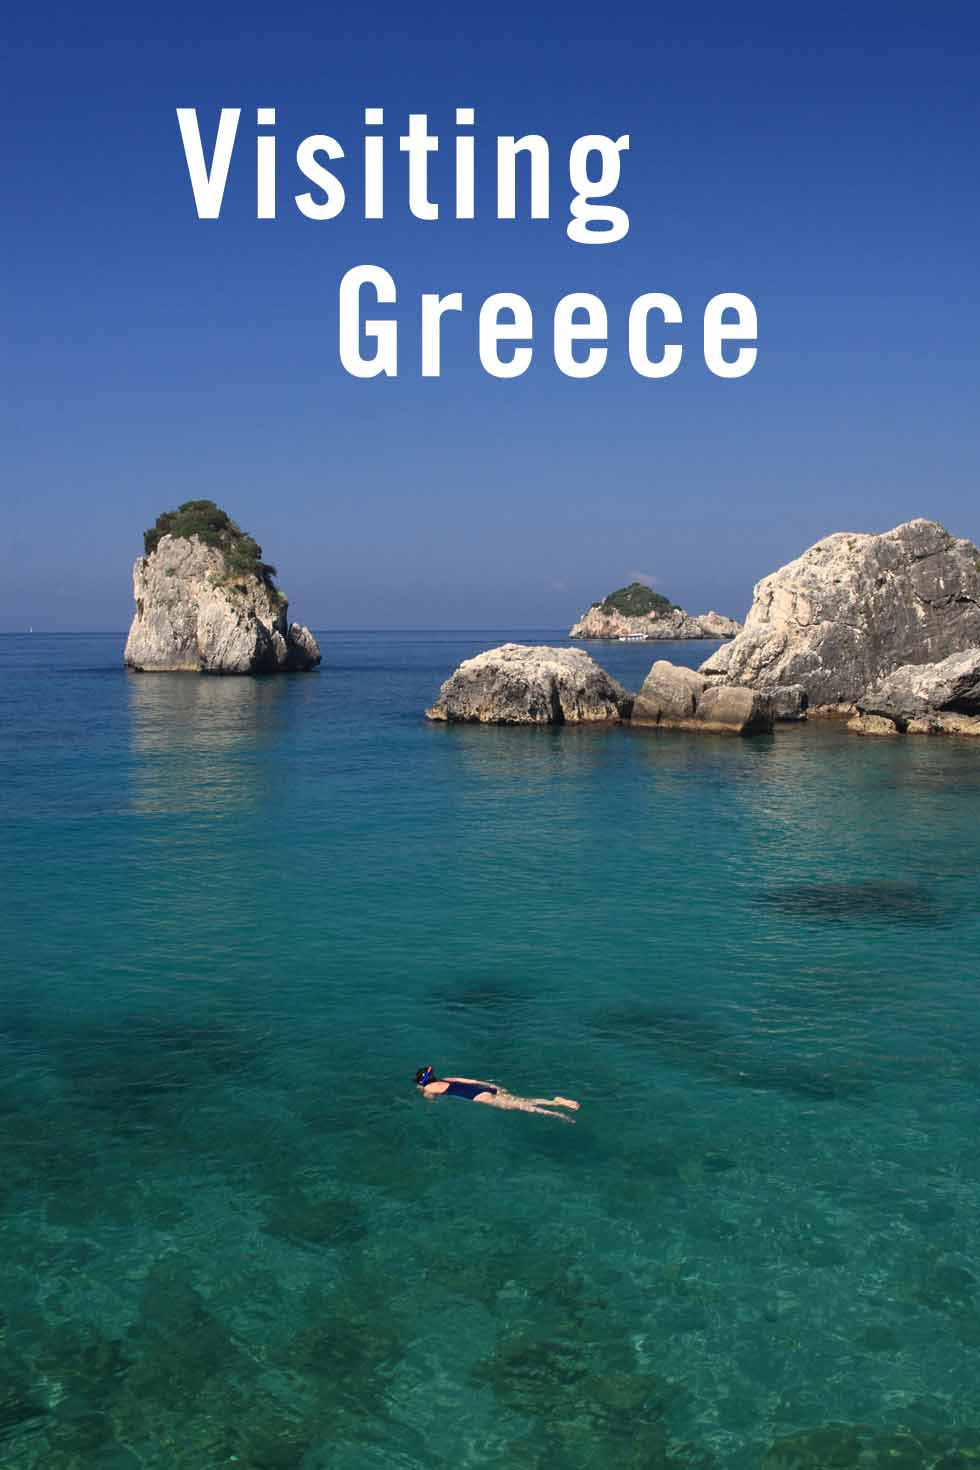 Visiting Greece